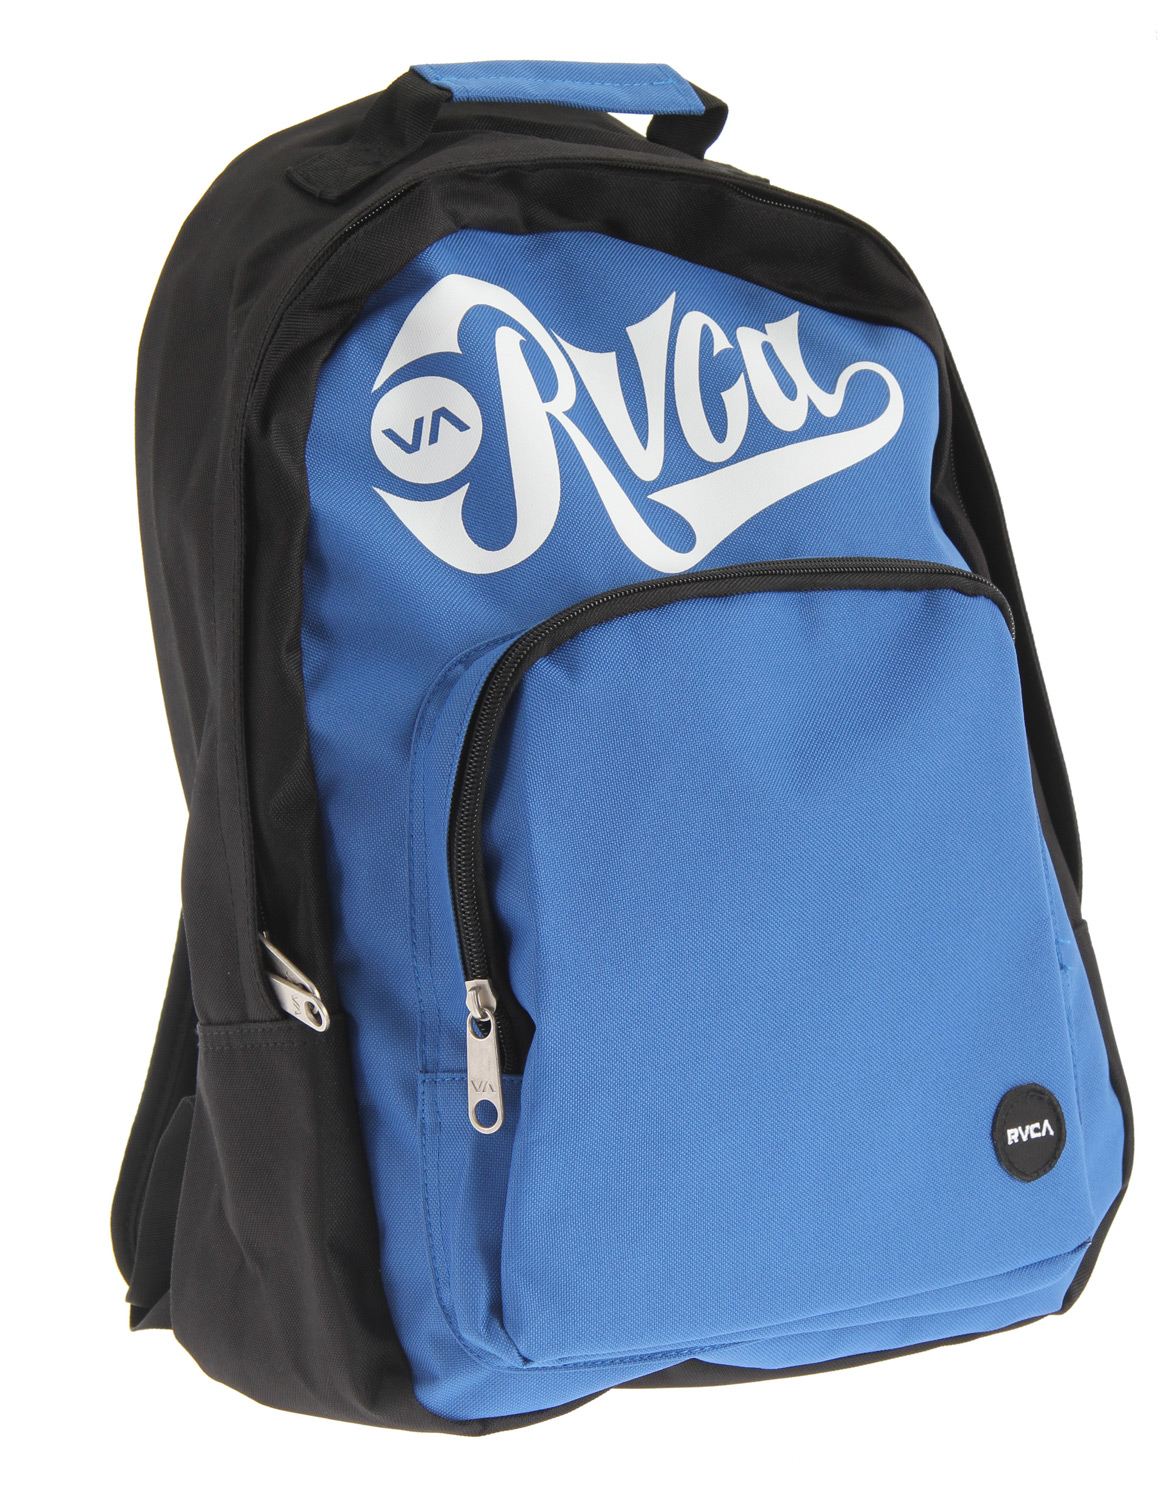 "Key Features of the RVCA Black Back Bomber Pak Backpack: Dimensions: 17"" x 13"" x 5.5"" 100% polyester backpack 2 zippered enclosed compartments Black contrast color at back RVCA screen print at front with RVCA woven patch at front pouch Padded shoulder straps - $25.95"